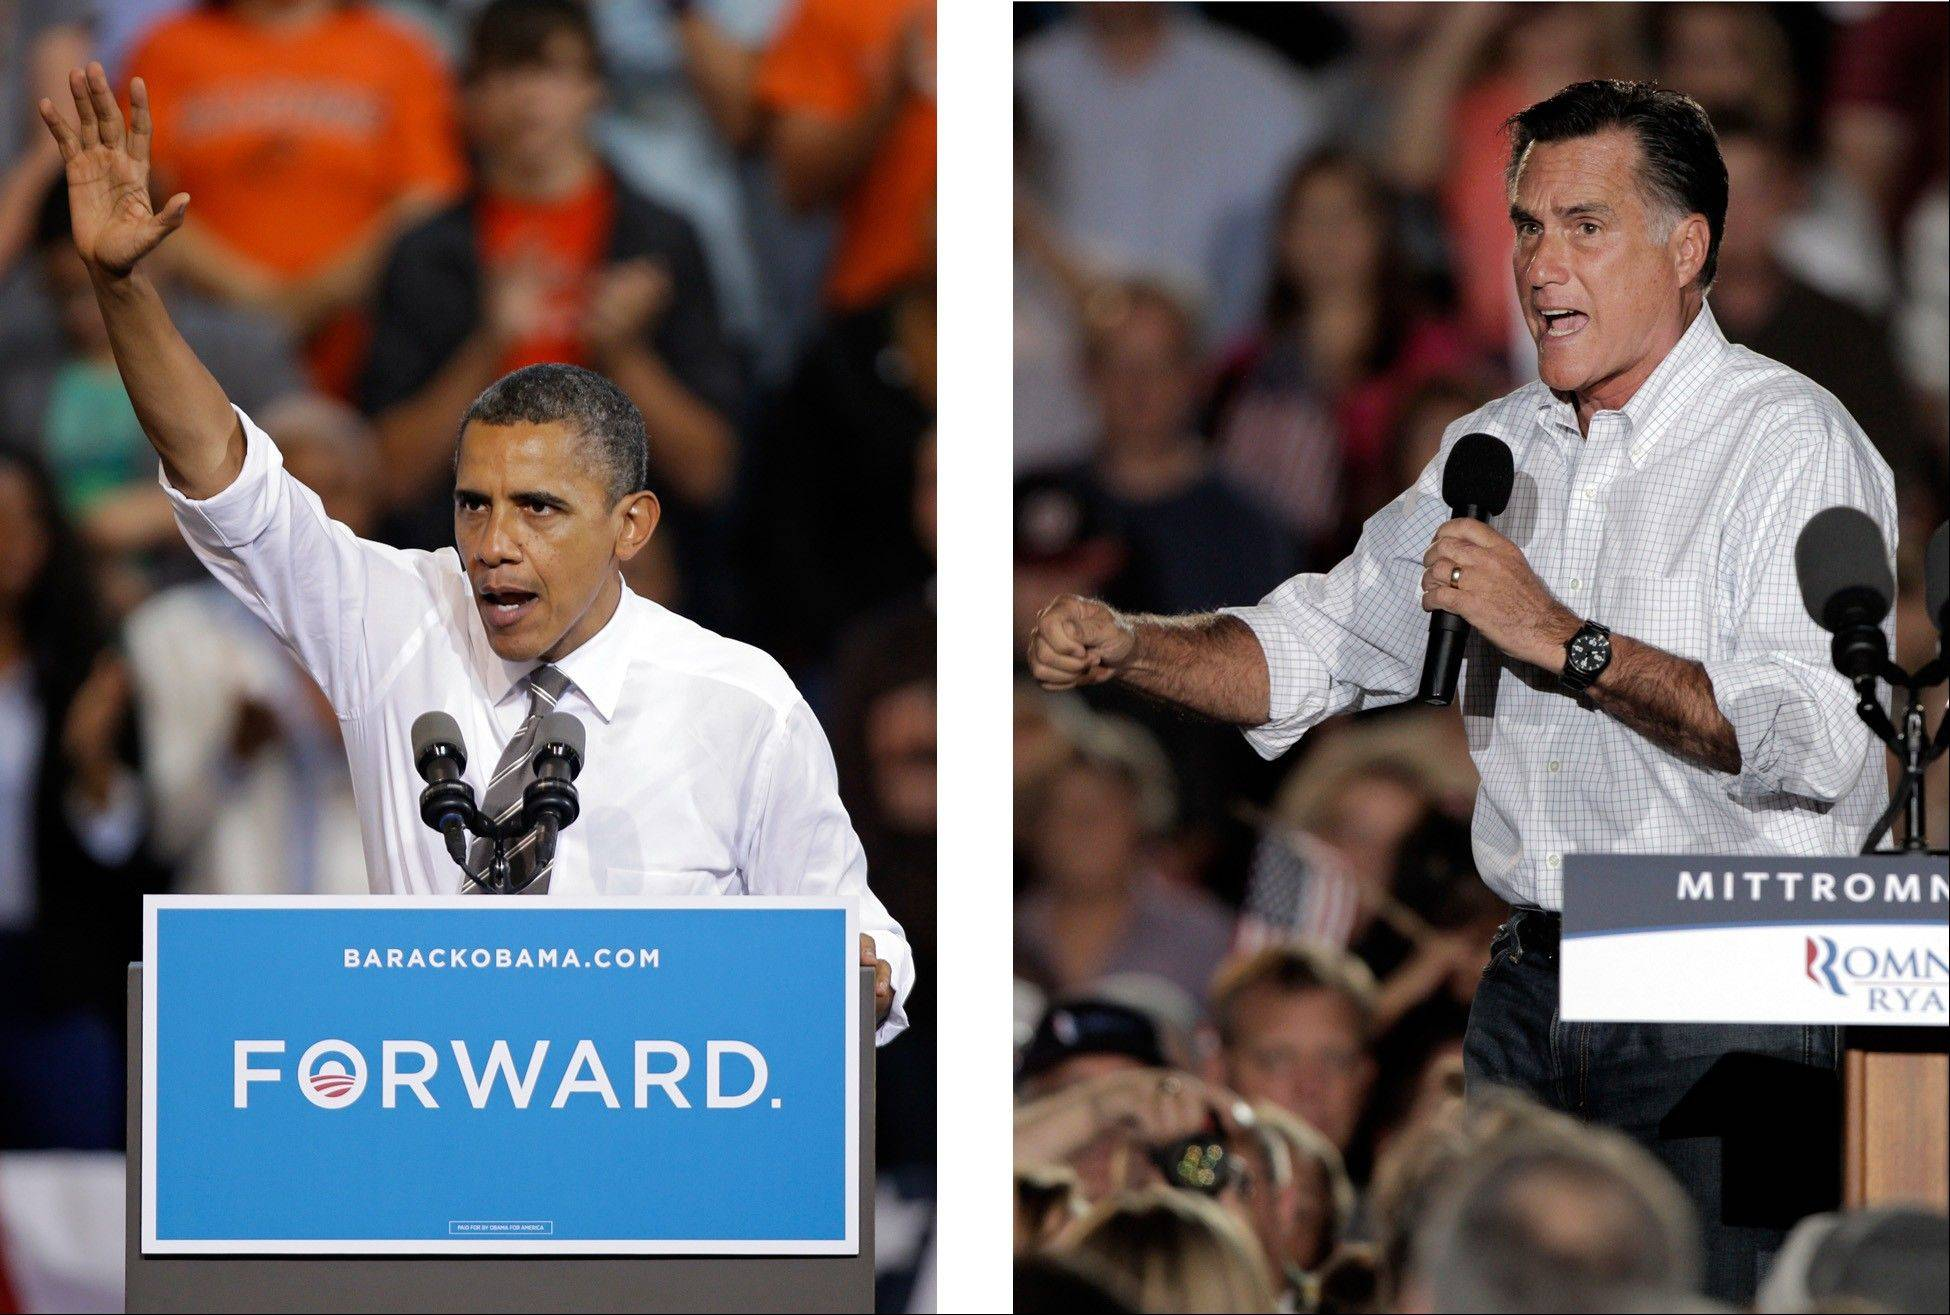 Associated PRESS PHOTO ILLUSTRATION President Barack Obama and Republican presidential candidate Mitt Romney both campaign in the battleground state of Ohio. Fierce and determined competitors, Obama and Romney each have a specific mission for the string of three debates that starts Wednesday night.